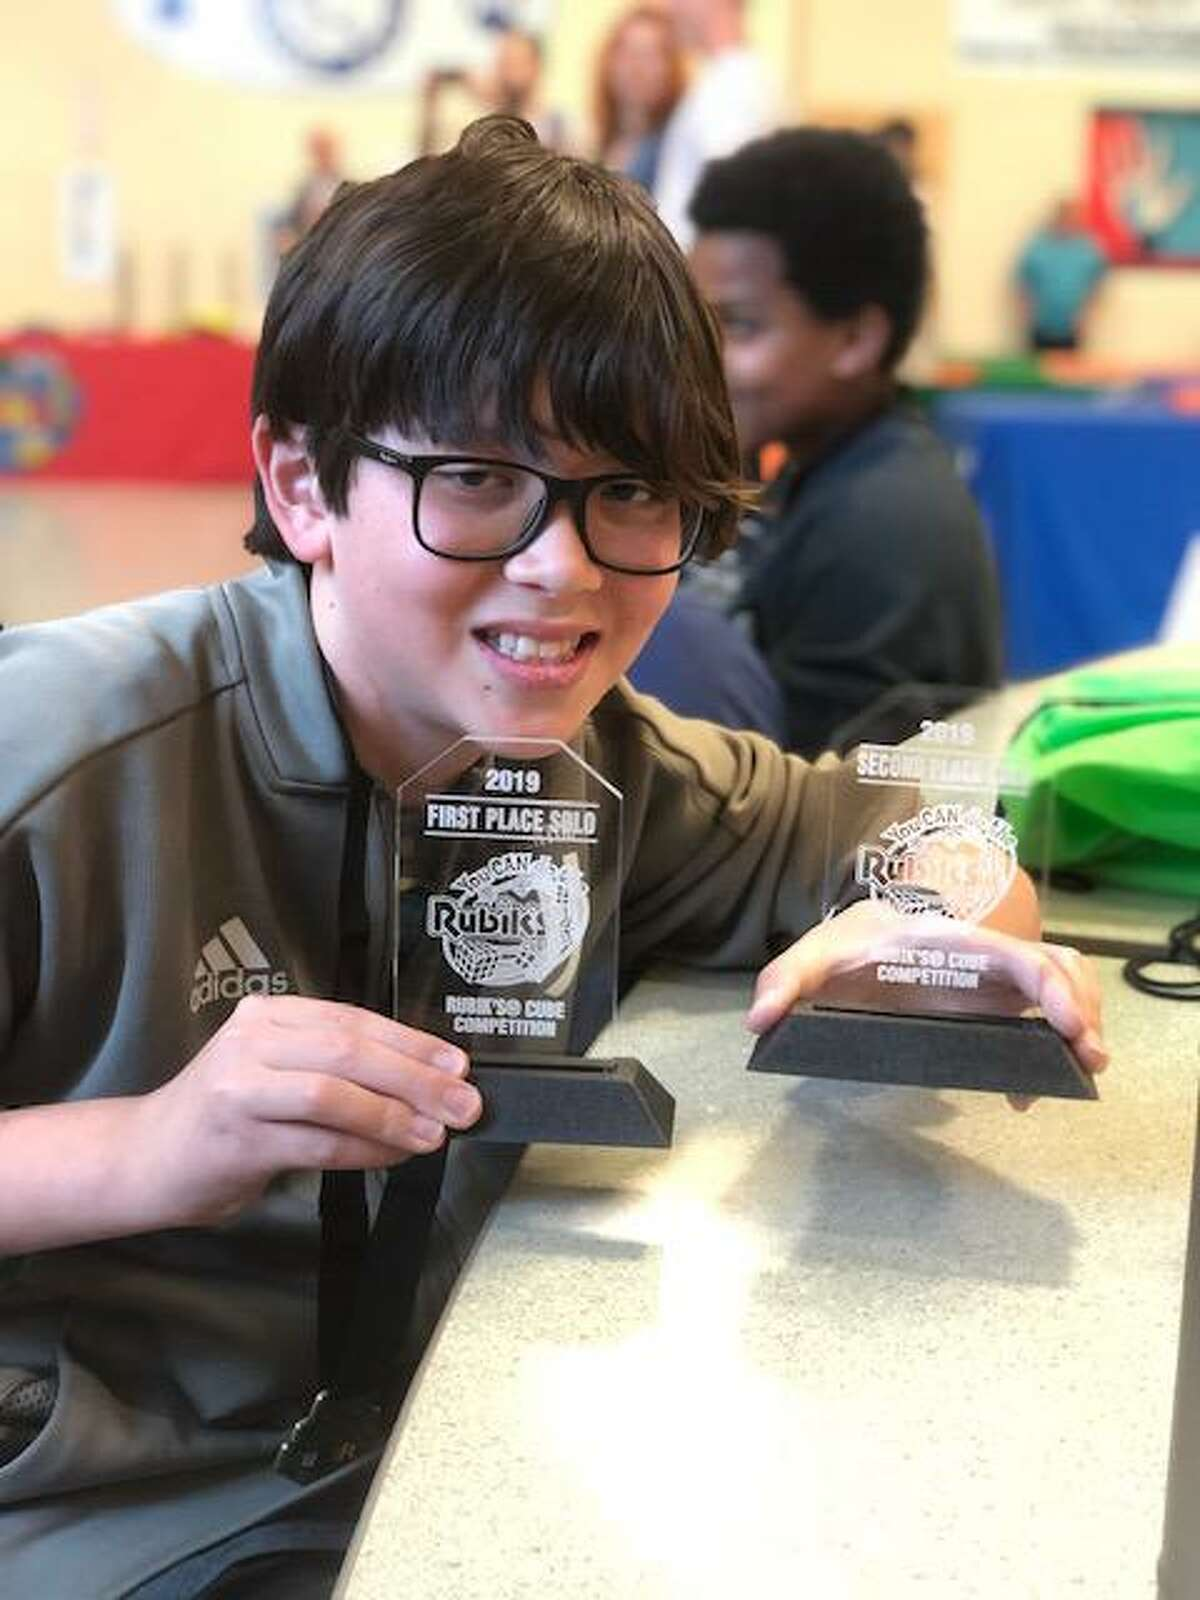 Macdonough Elementary School Rubik's Cube competitor Rye Antonio solved the three-dimensional puzzle in 17.9 seconds.